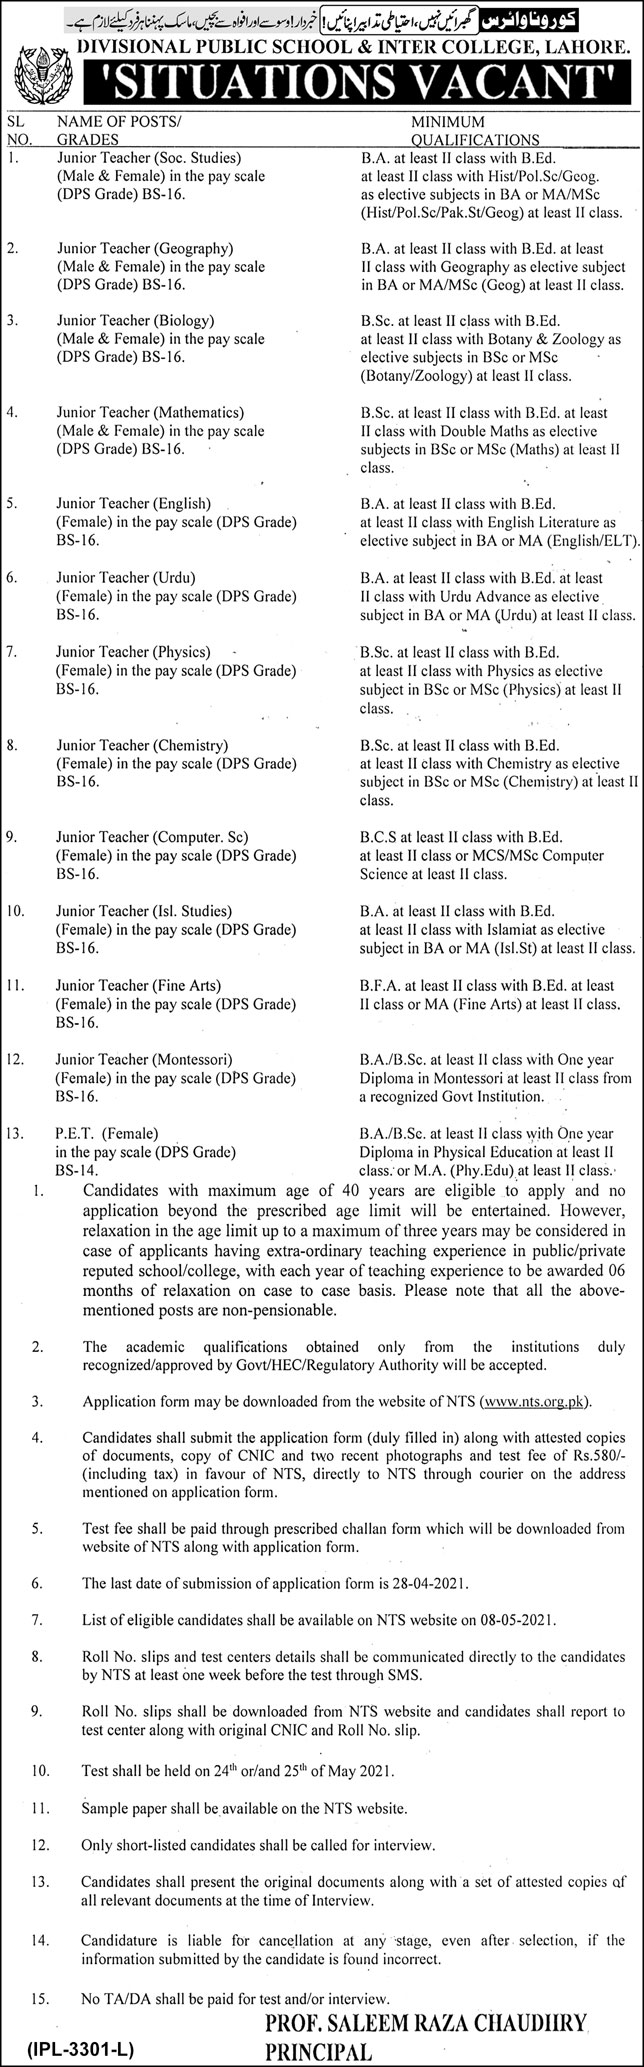 Division Public School,Inter college Lahore jobs for junior teacher,PET and other April 2021Advertisement